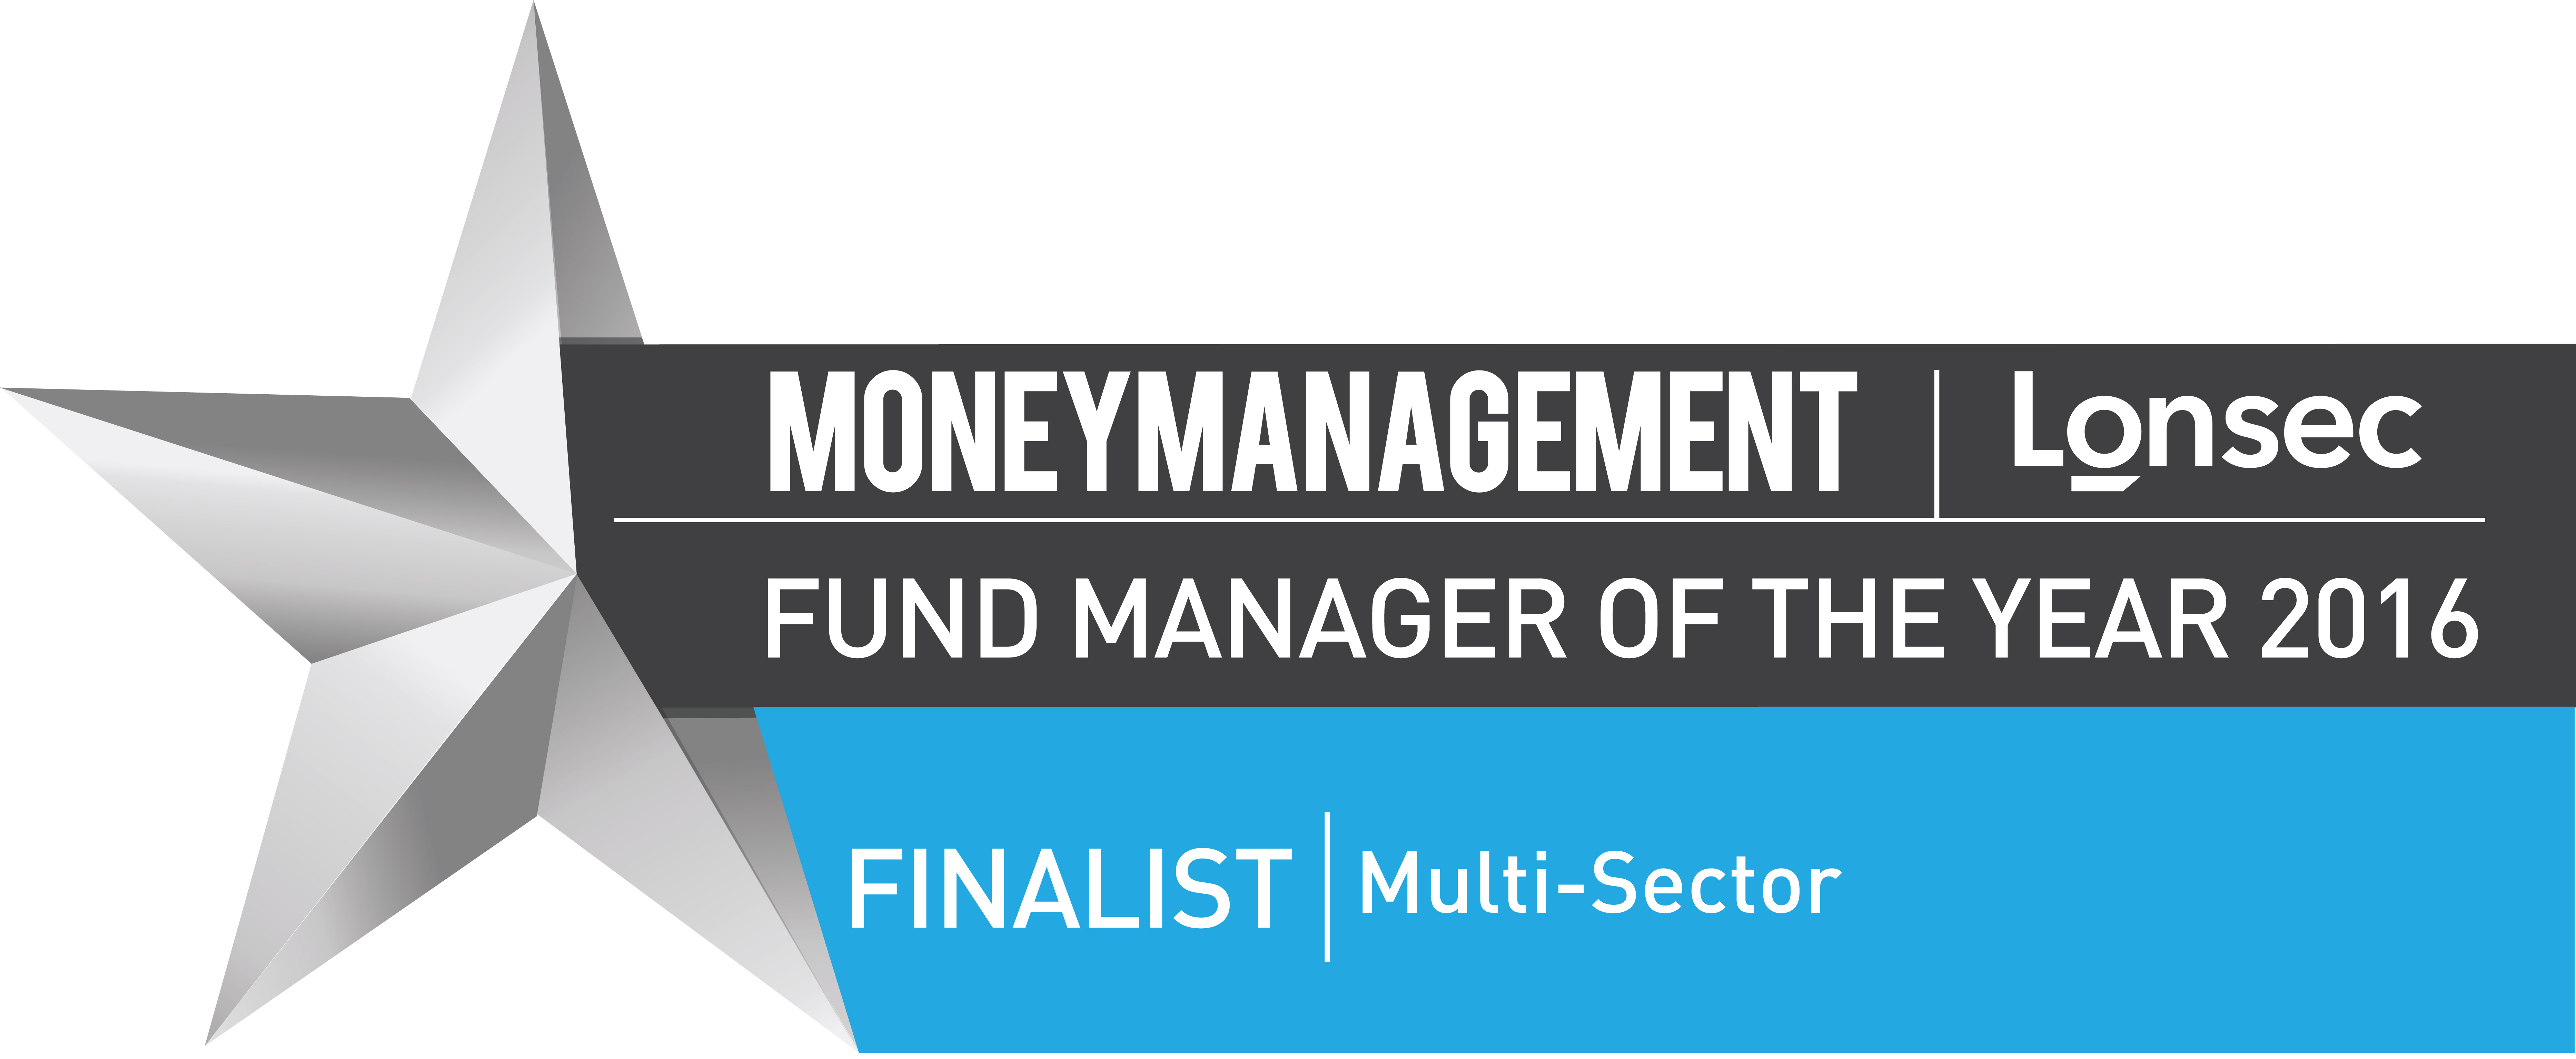 Money Management multi-sector